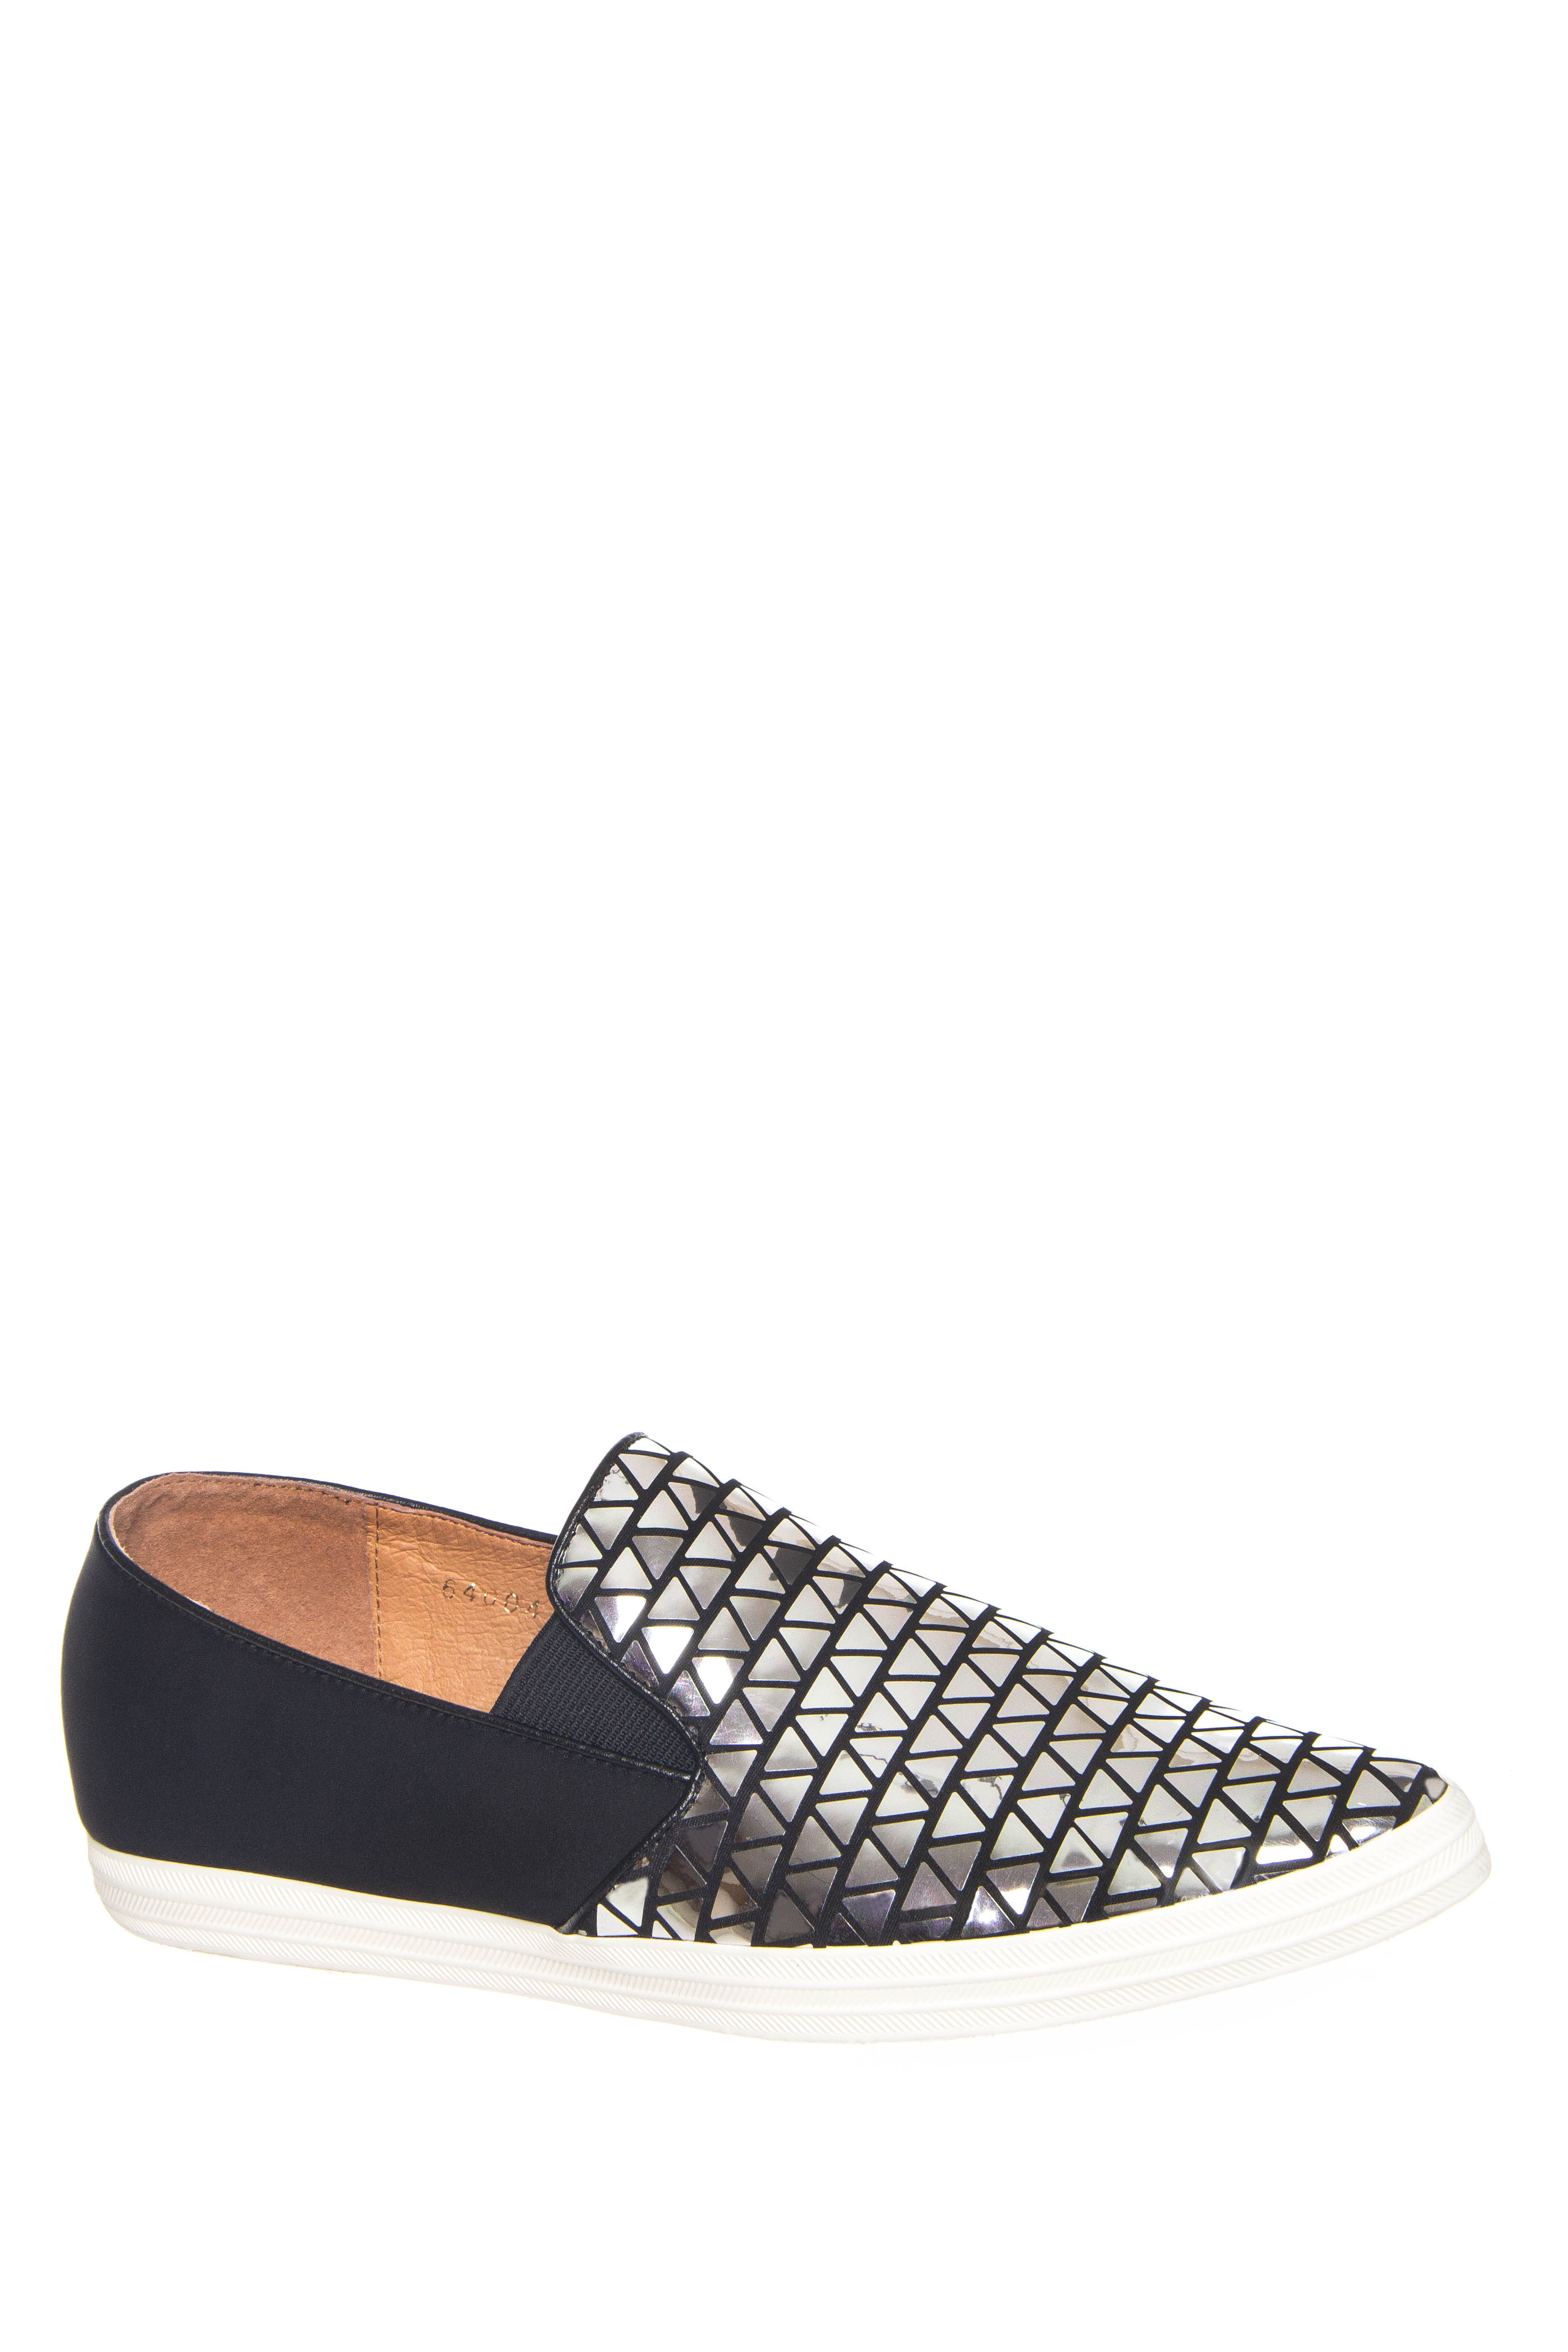 All Black Scales Pointed Toe Slip On Sneakers - Silver / Black